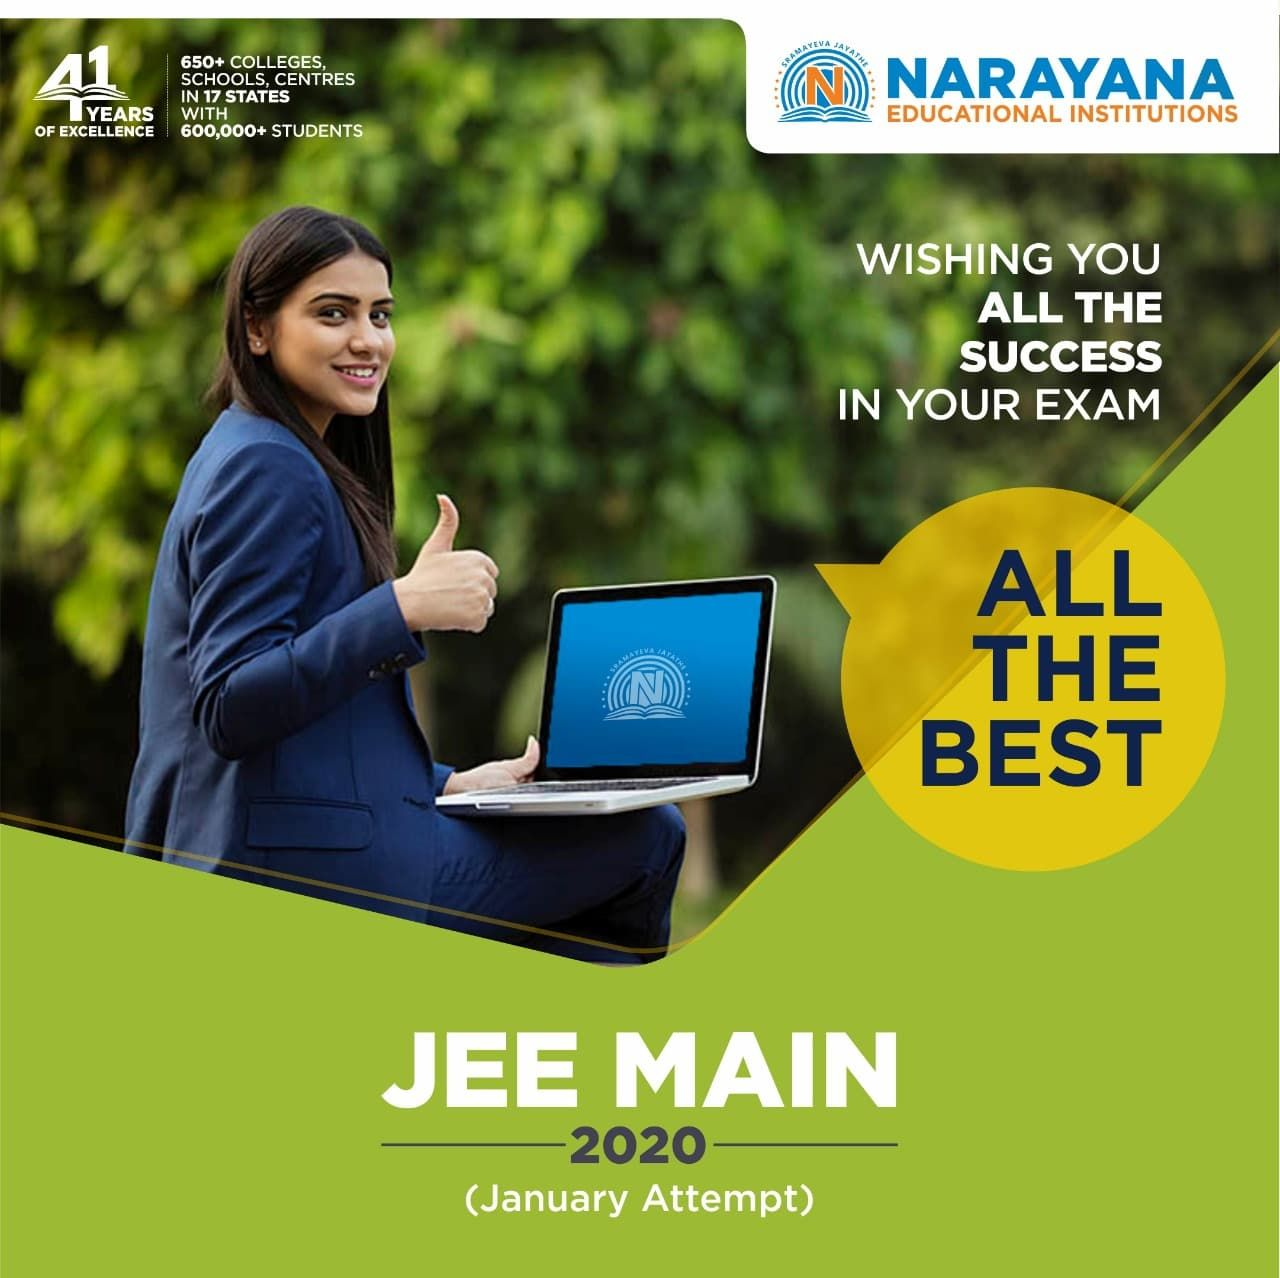 All The Best For Jee Main 2020 In 2020 Coaching Institute In Delhi Coaching Education